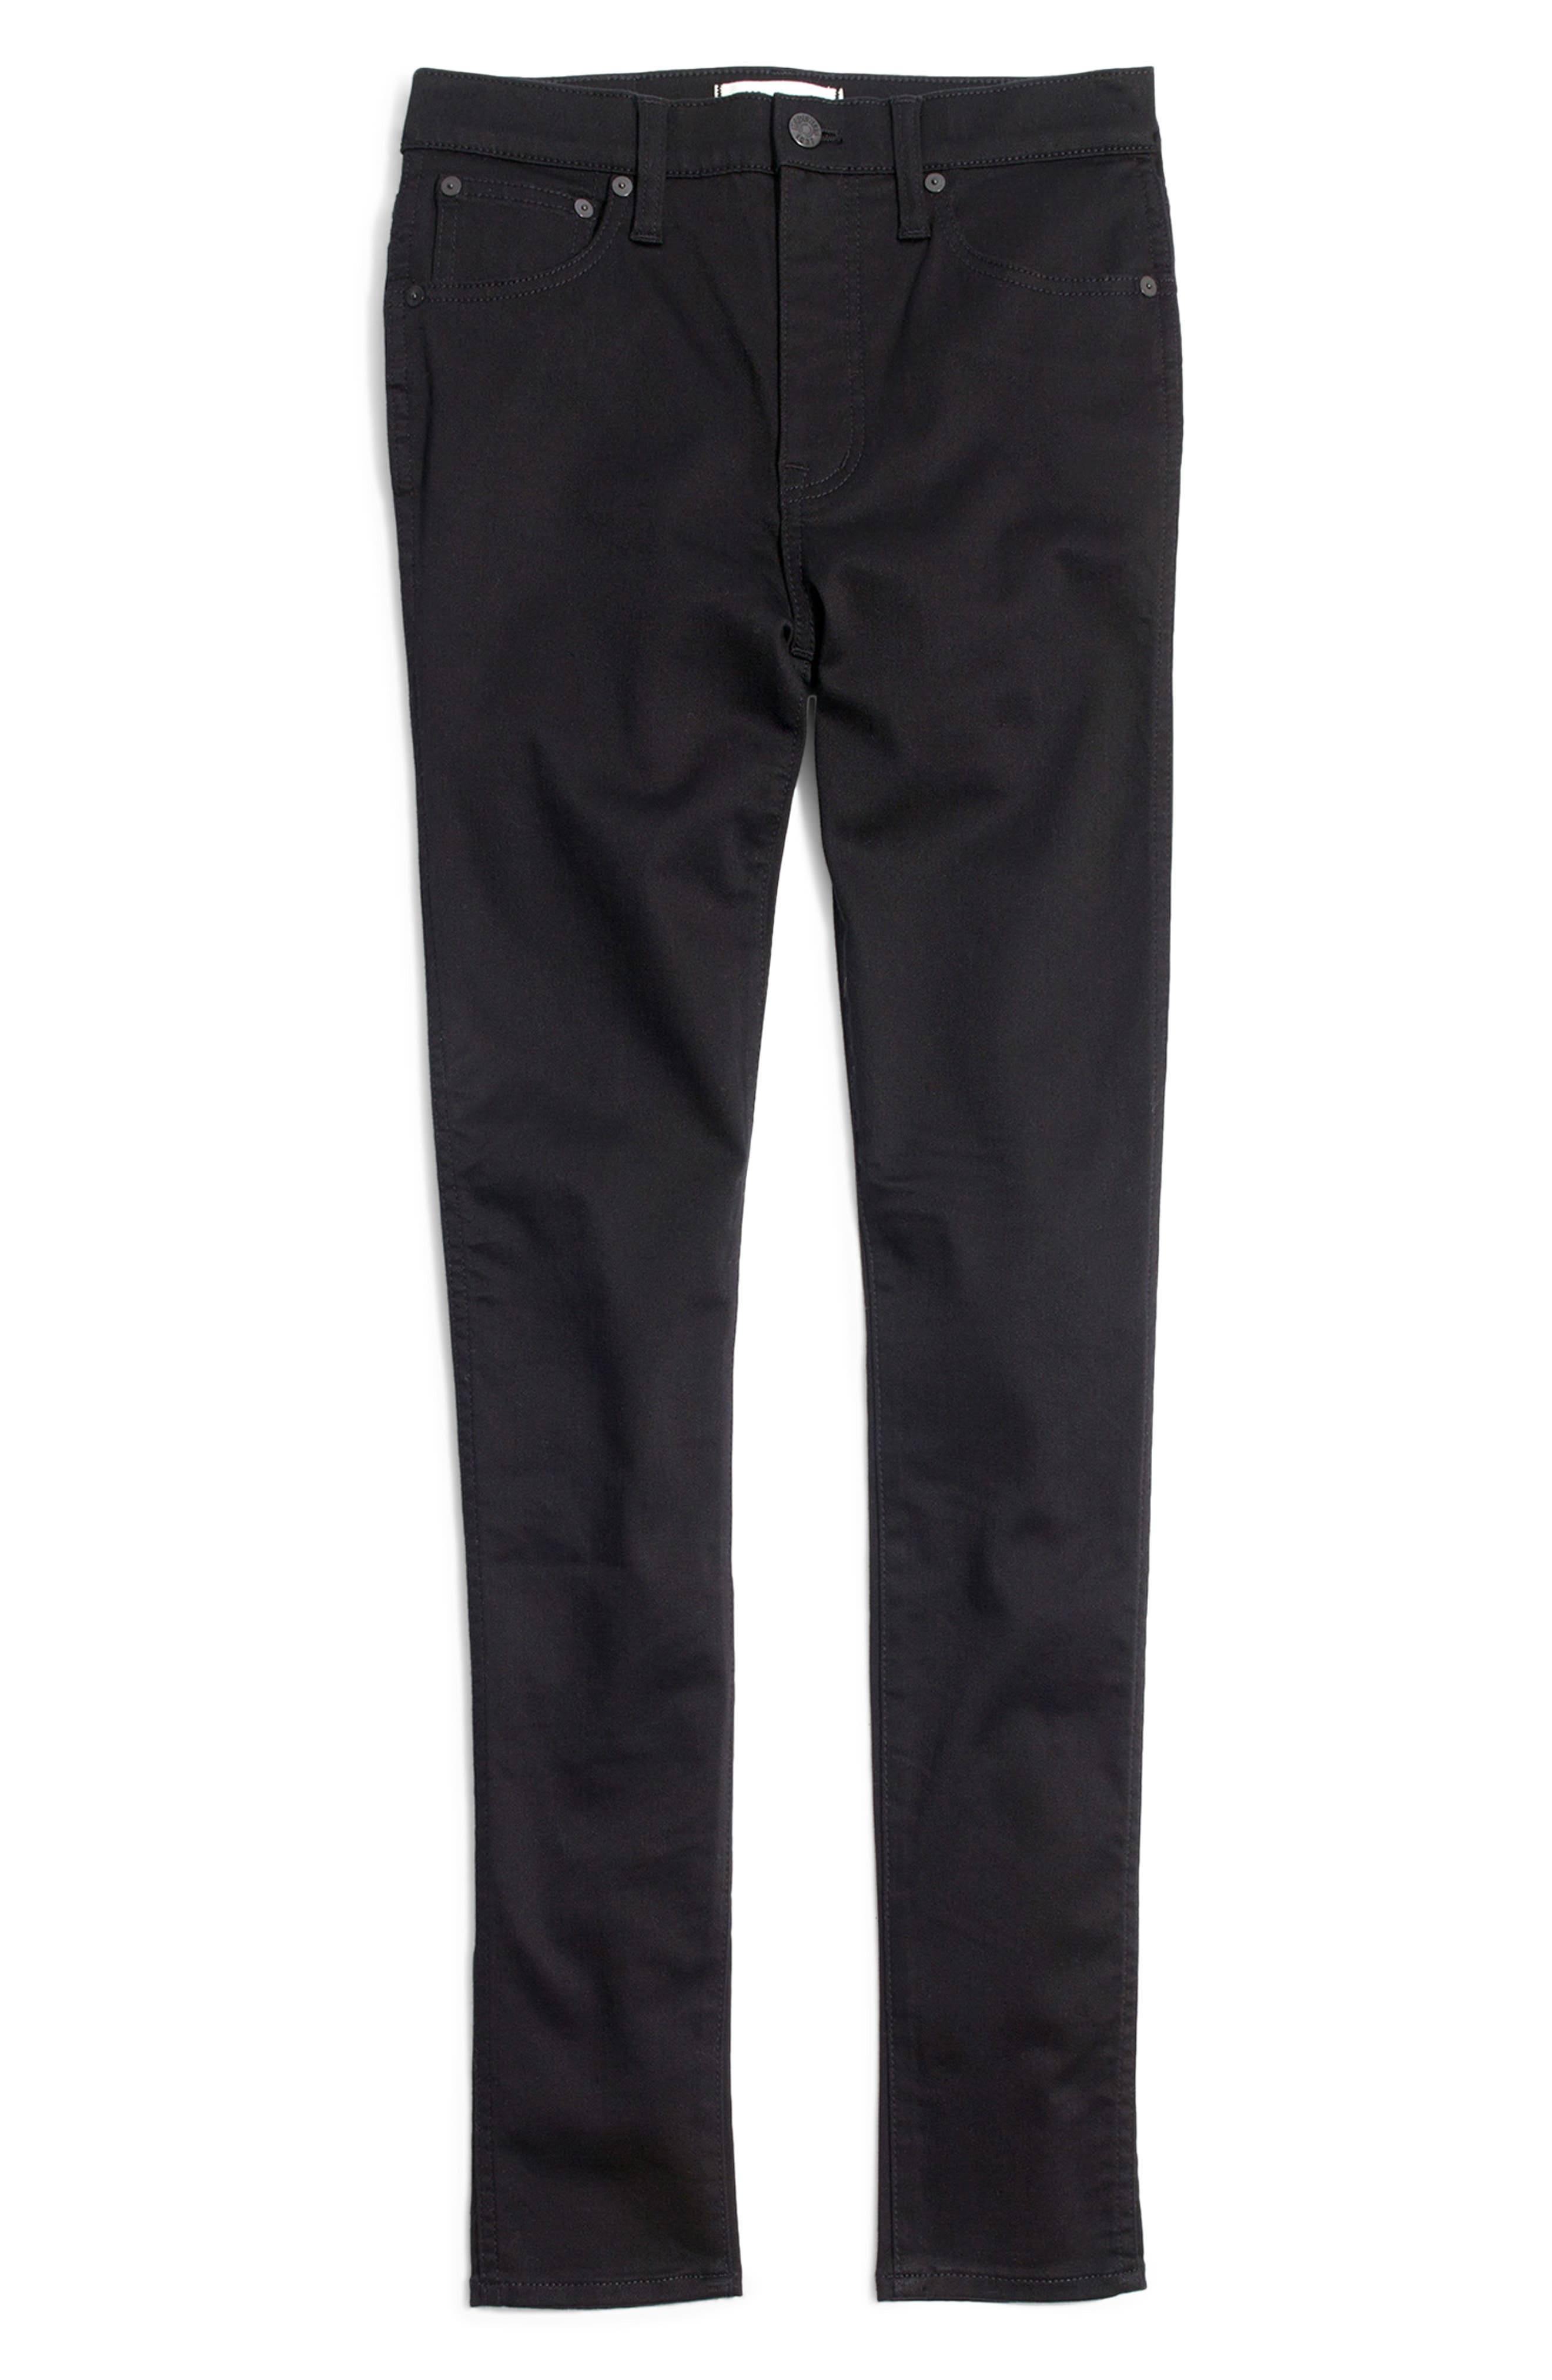 10-Inch High Rise Skinny Jeans,                             Alternate thumbnail 6, color,                             CARBONDALE